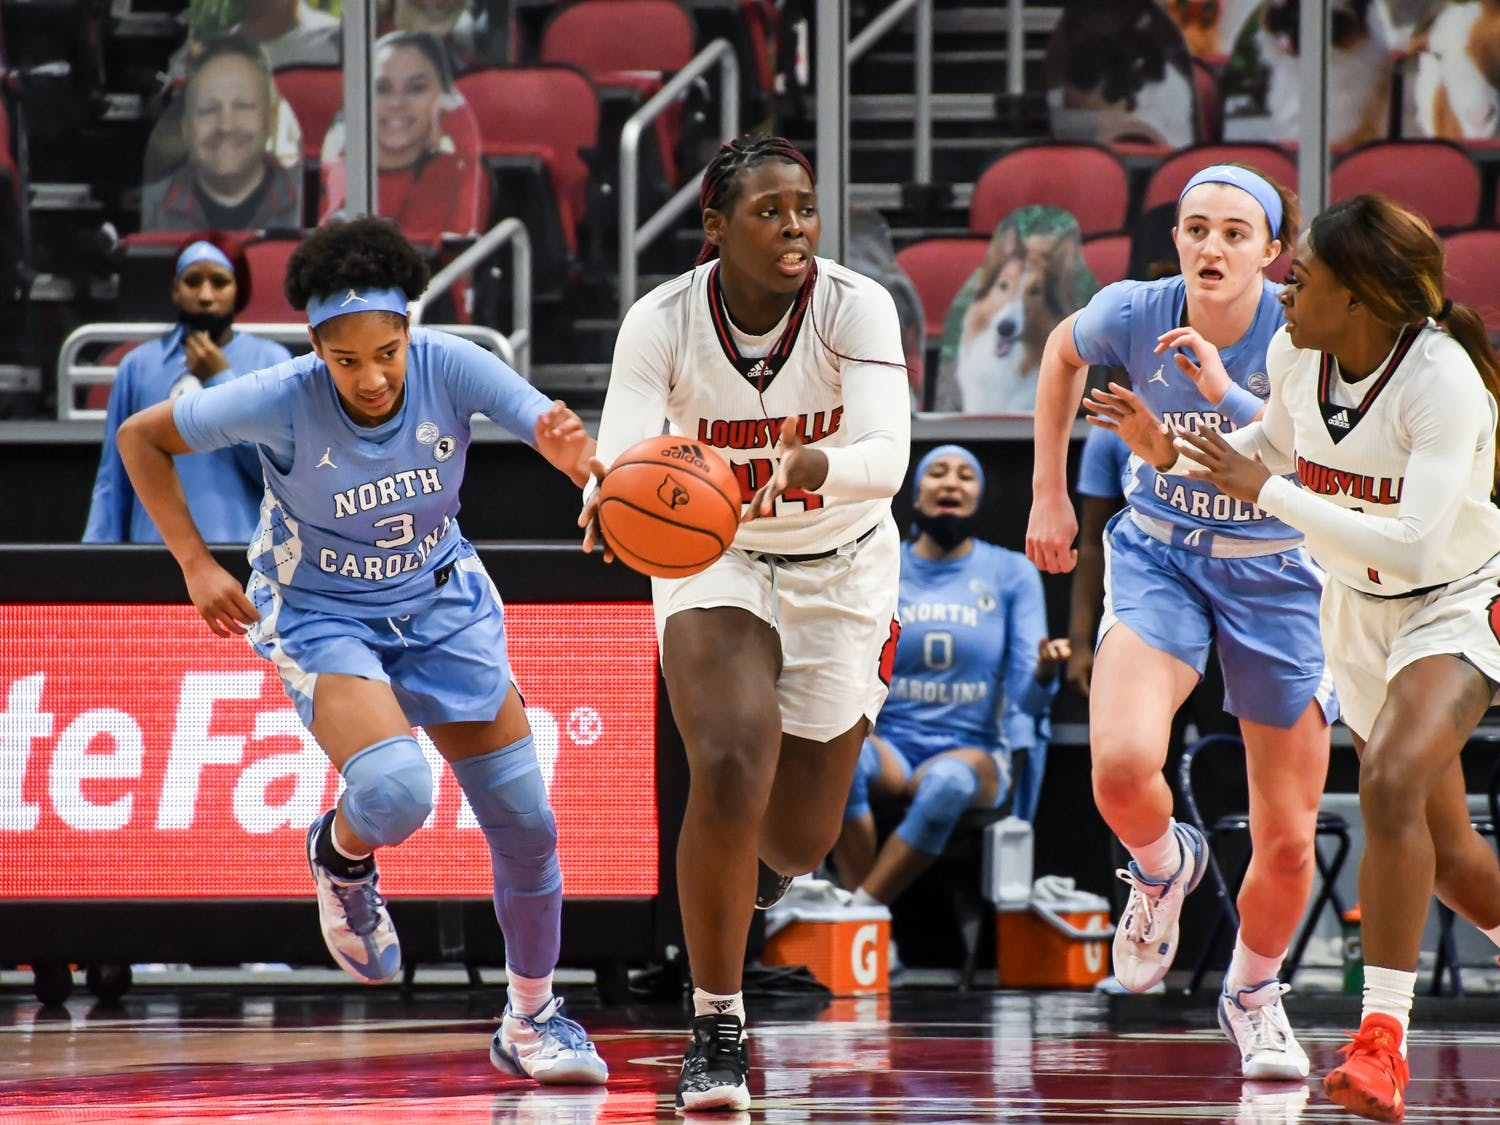 Louisville's first-year forward Olivia Cochran (44) attempts to pass to senior guard Dana Evans (1) during a game against UNC on Thursday, Jan. 28, 2021. UNC fell to the Cardinals 68-79. Photo courtesy of Jared Anderson.